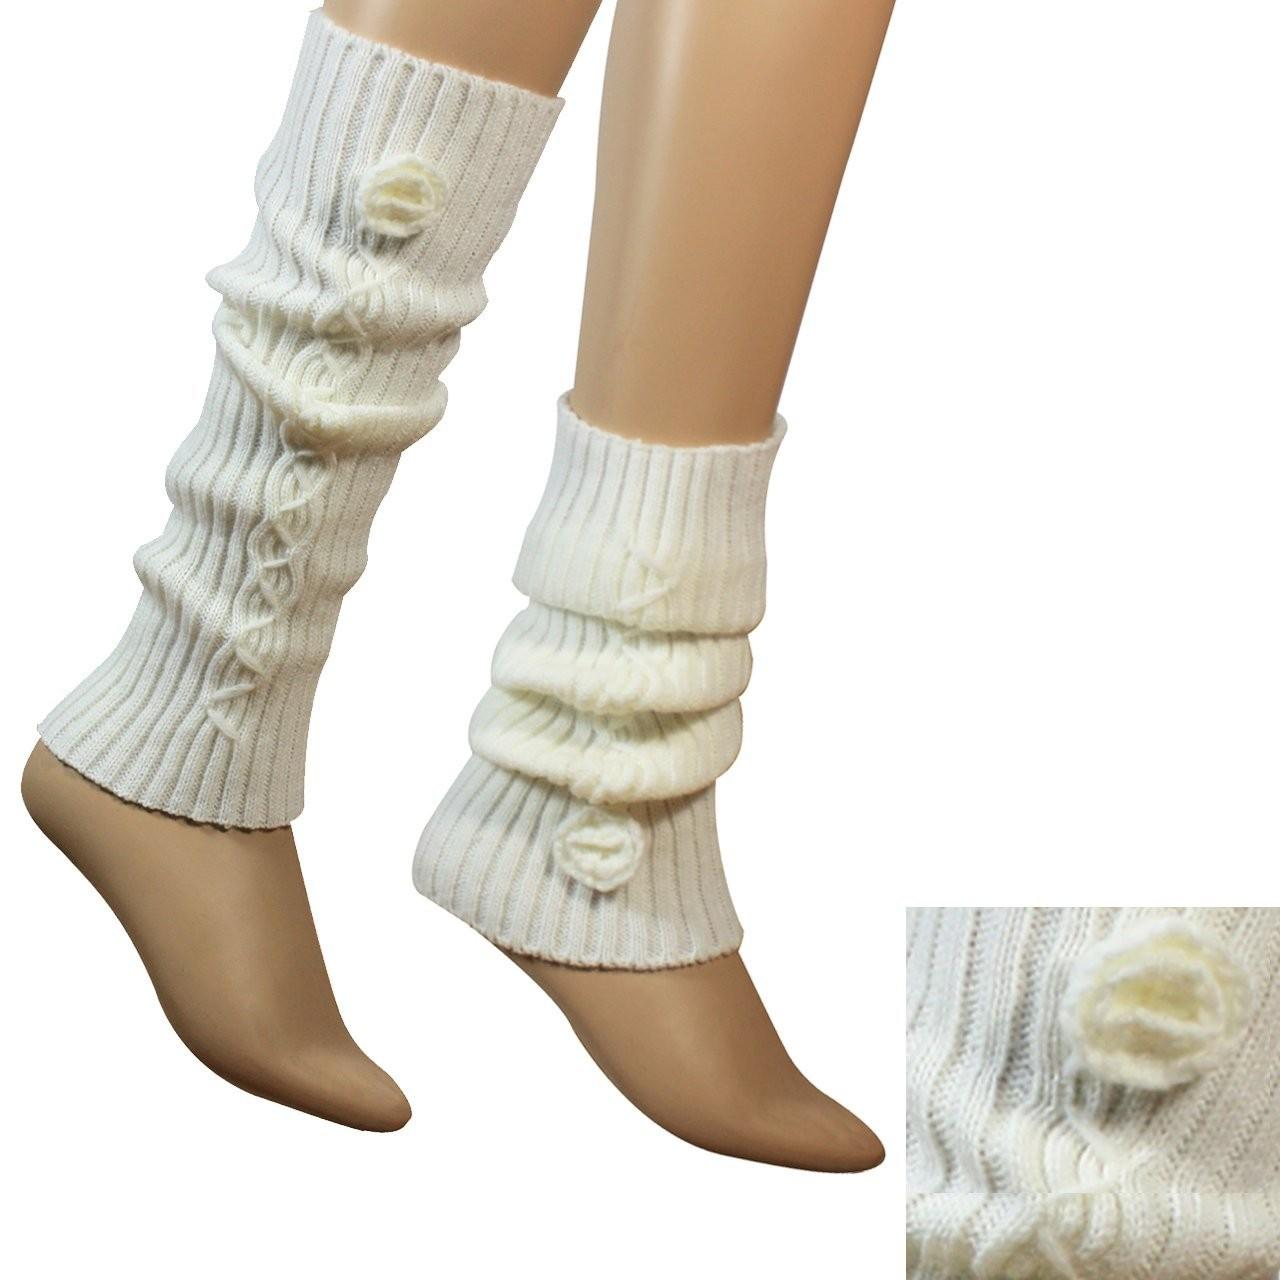 Cheap 3.5 / 15.75 Inches White / Gray / Black Acrylic Knitted Leg Warmer Pattern For for sale